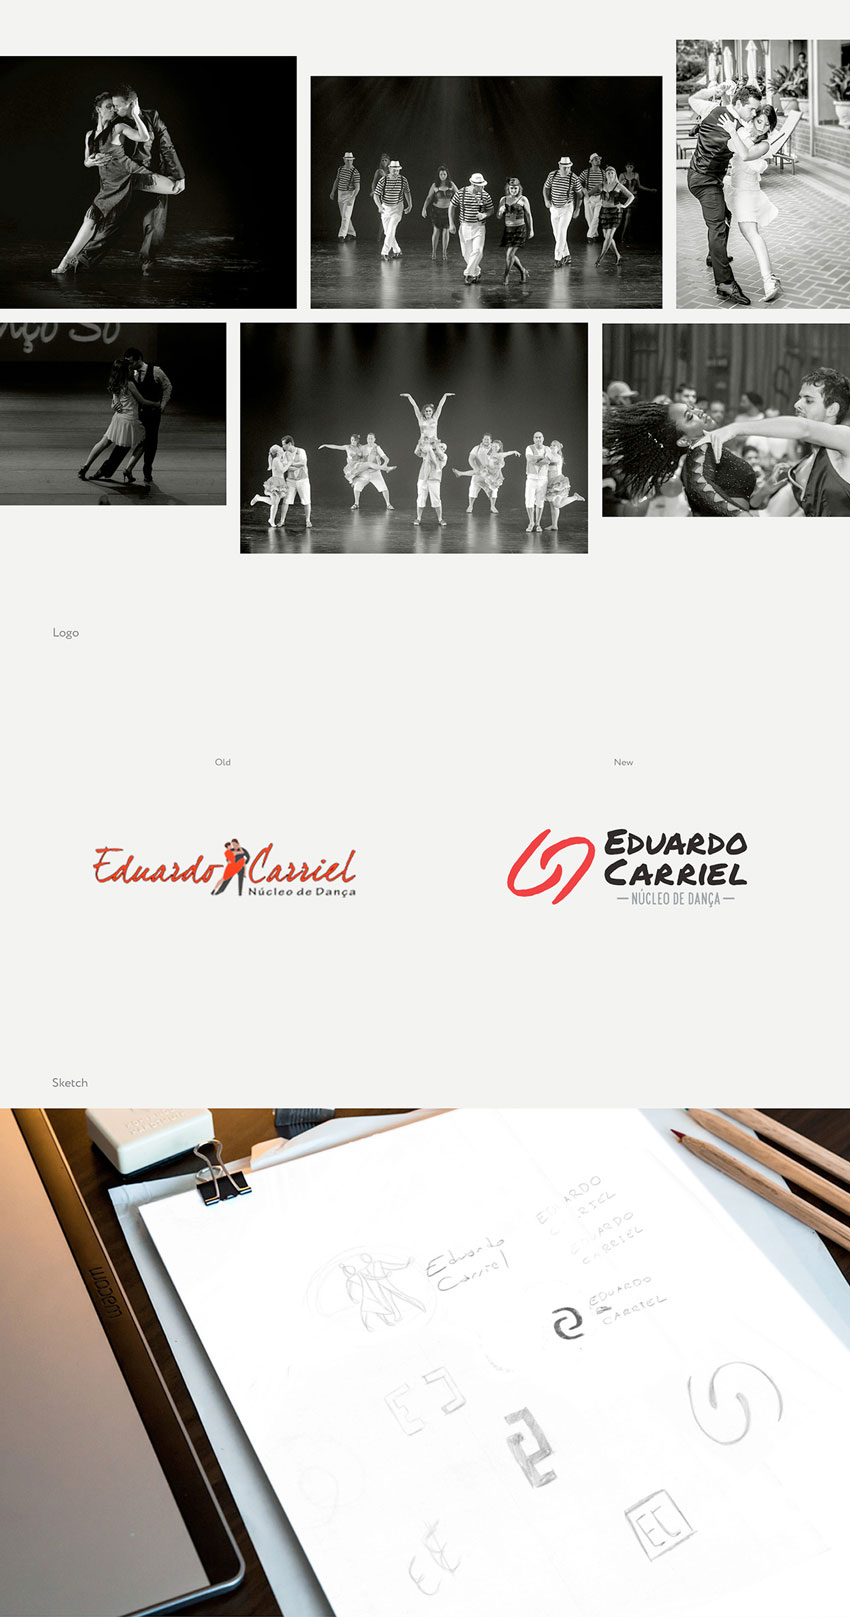 Eduardo Carriel Redesign Marca